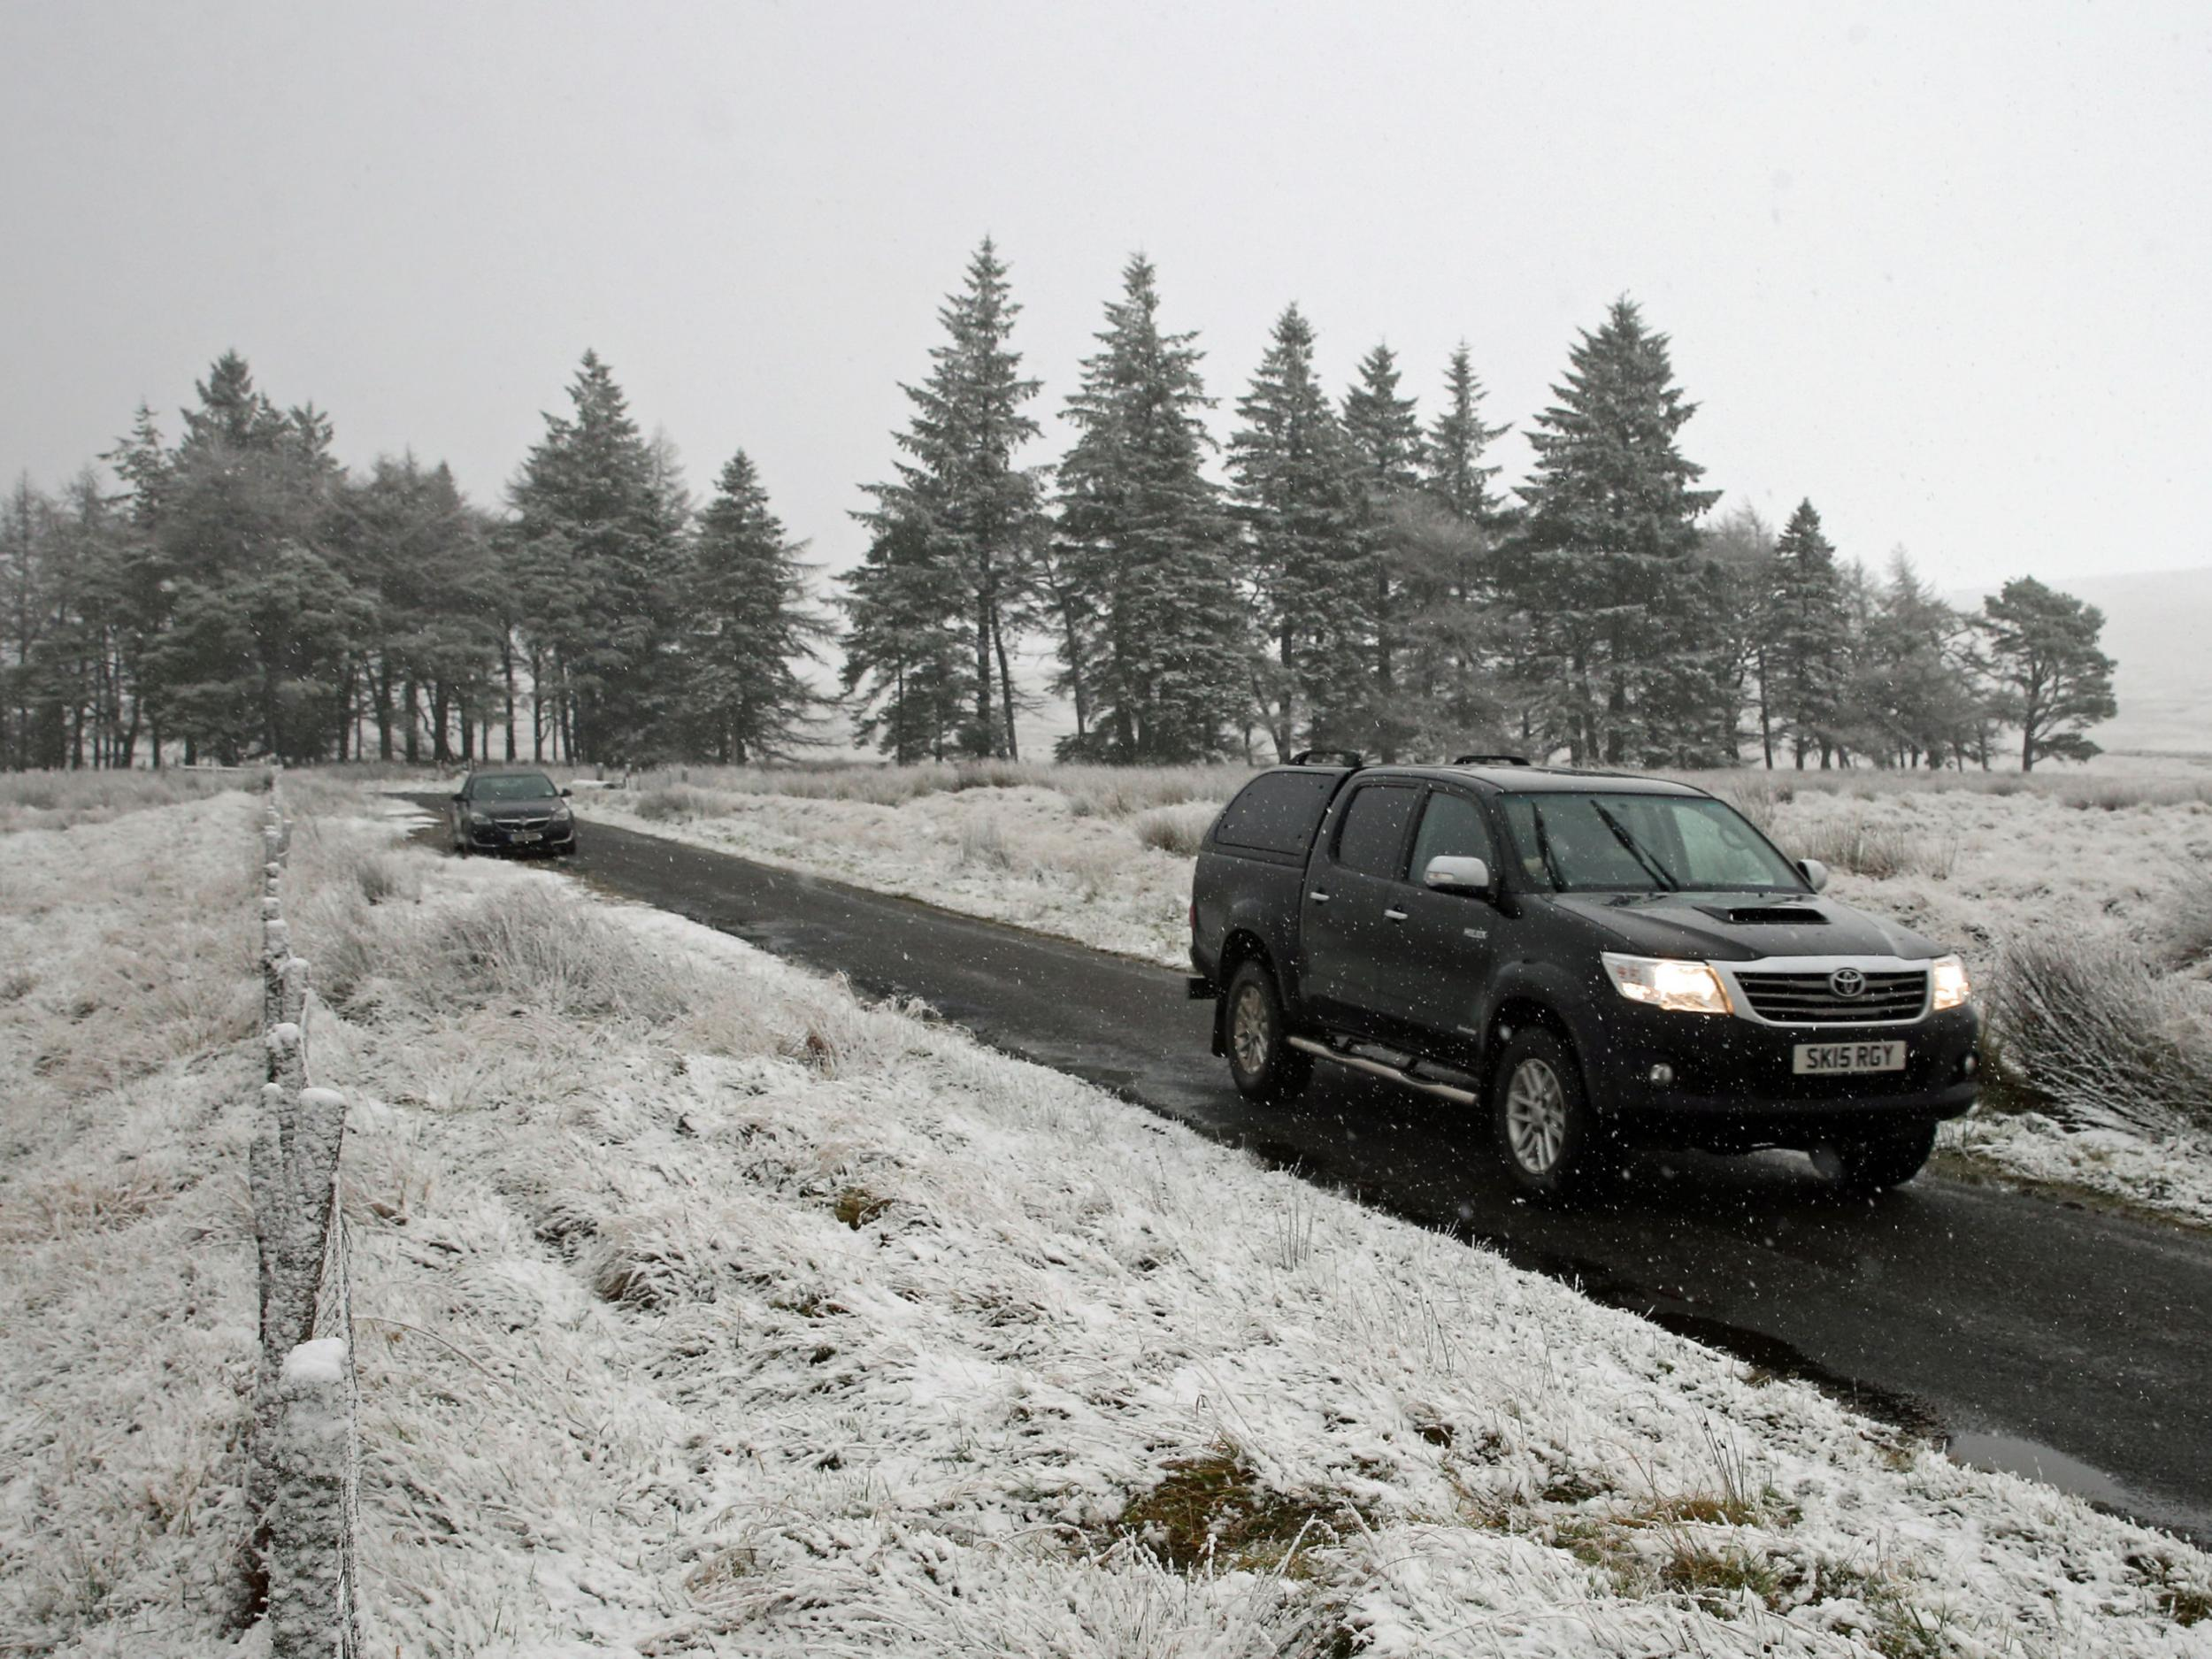 uk weather  met office issues ice and snow warning as